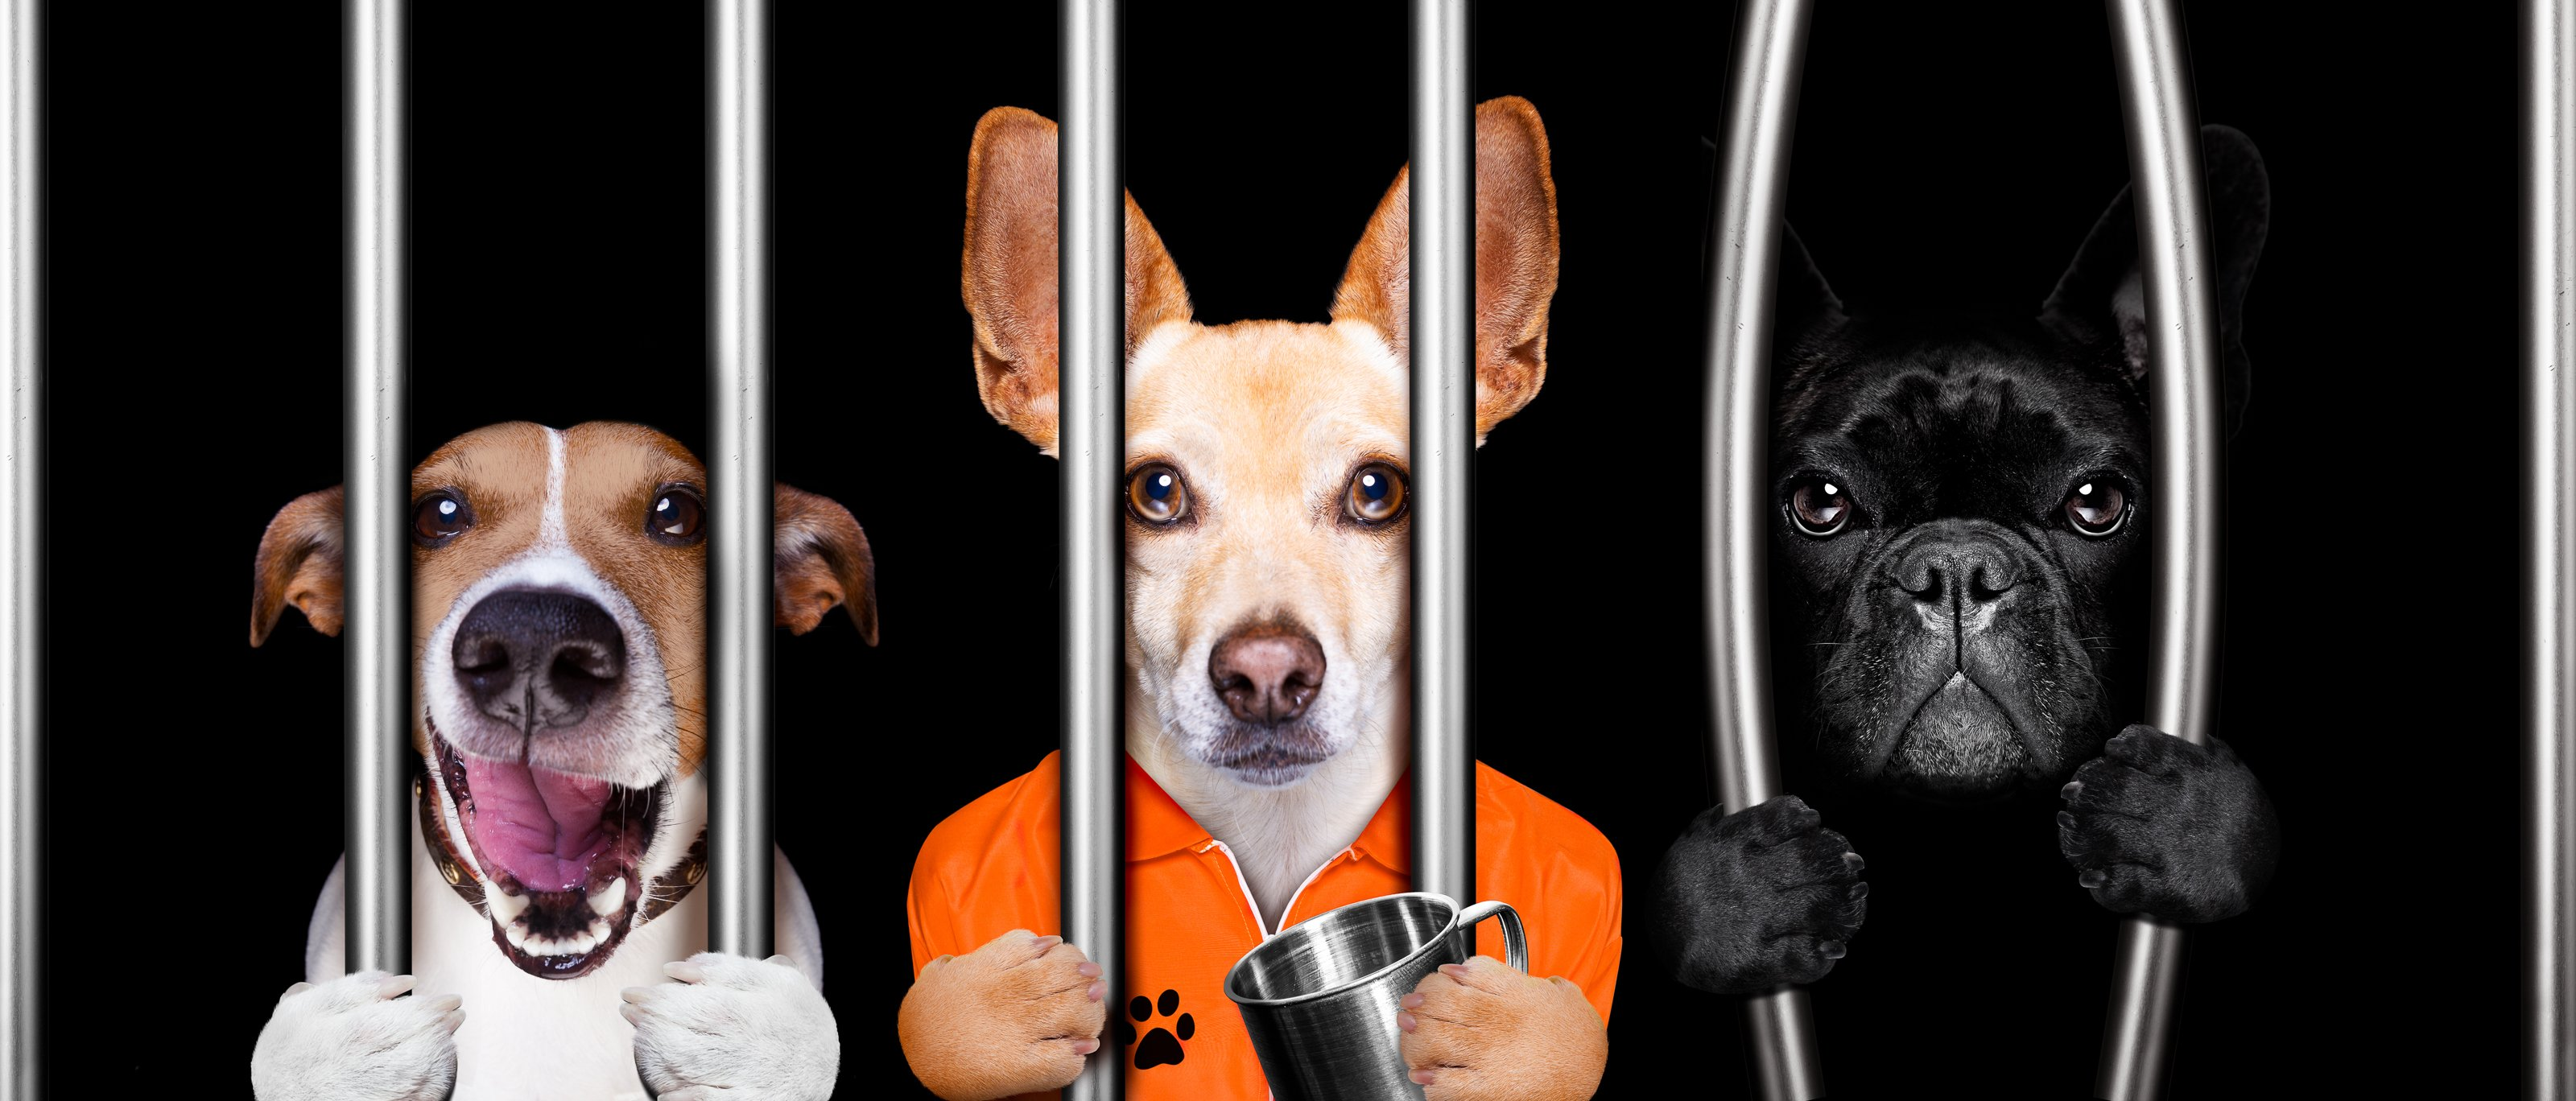 Puppies In Jail